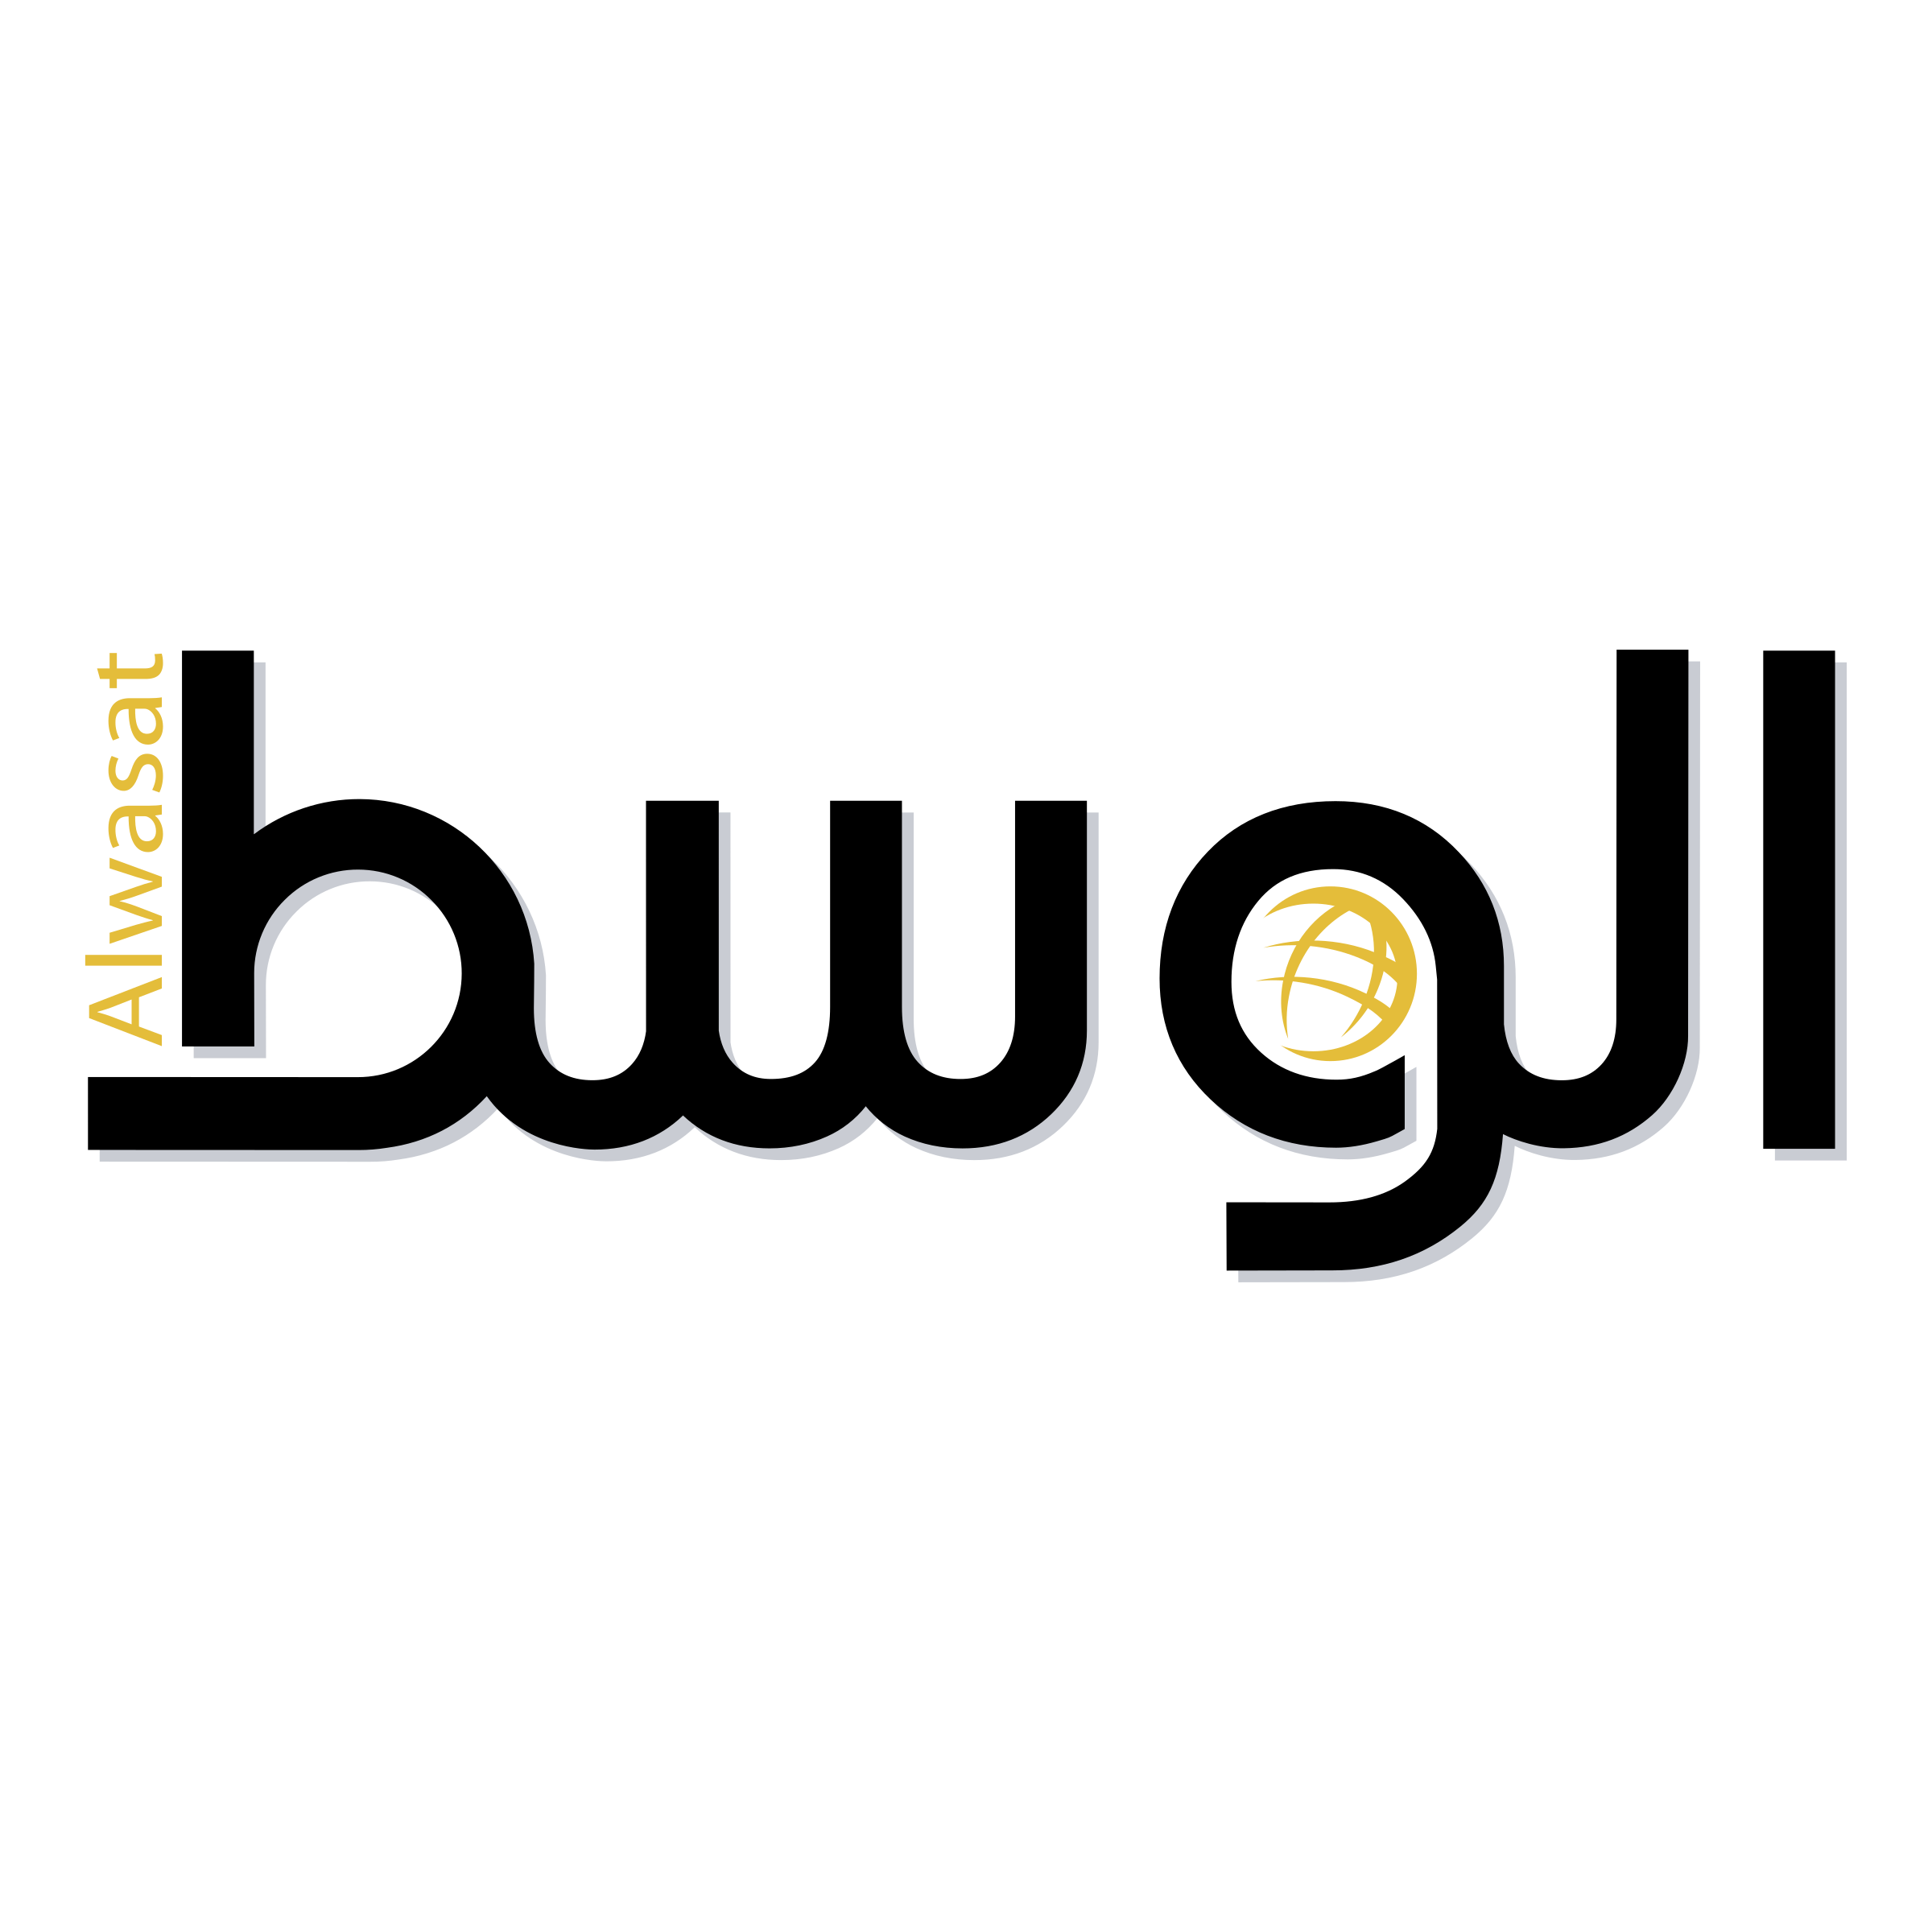 alwasat newspaper logo png transparent & svg vector - freebie supply